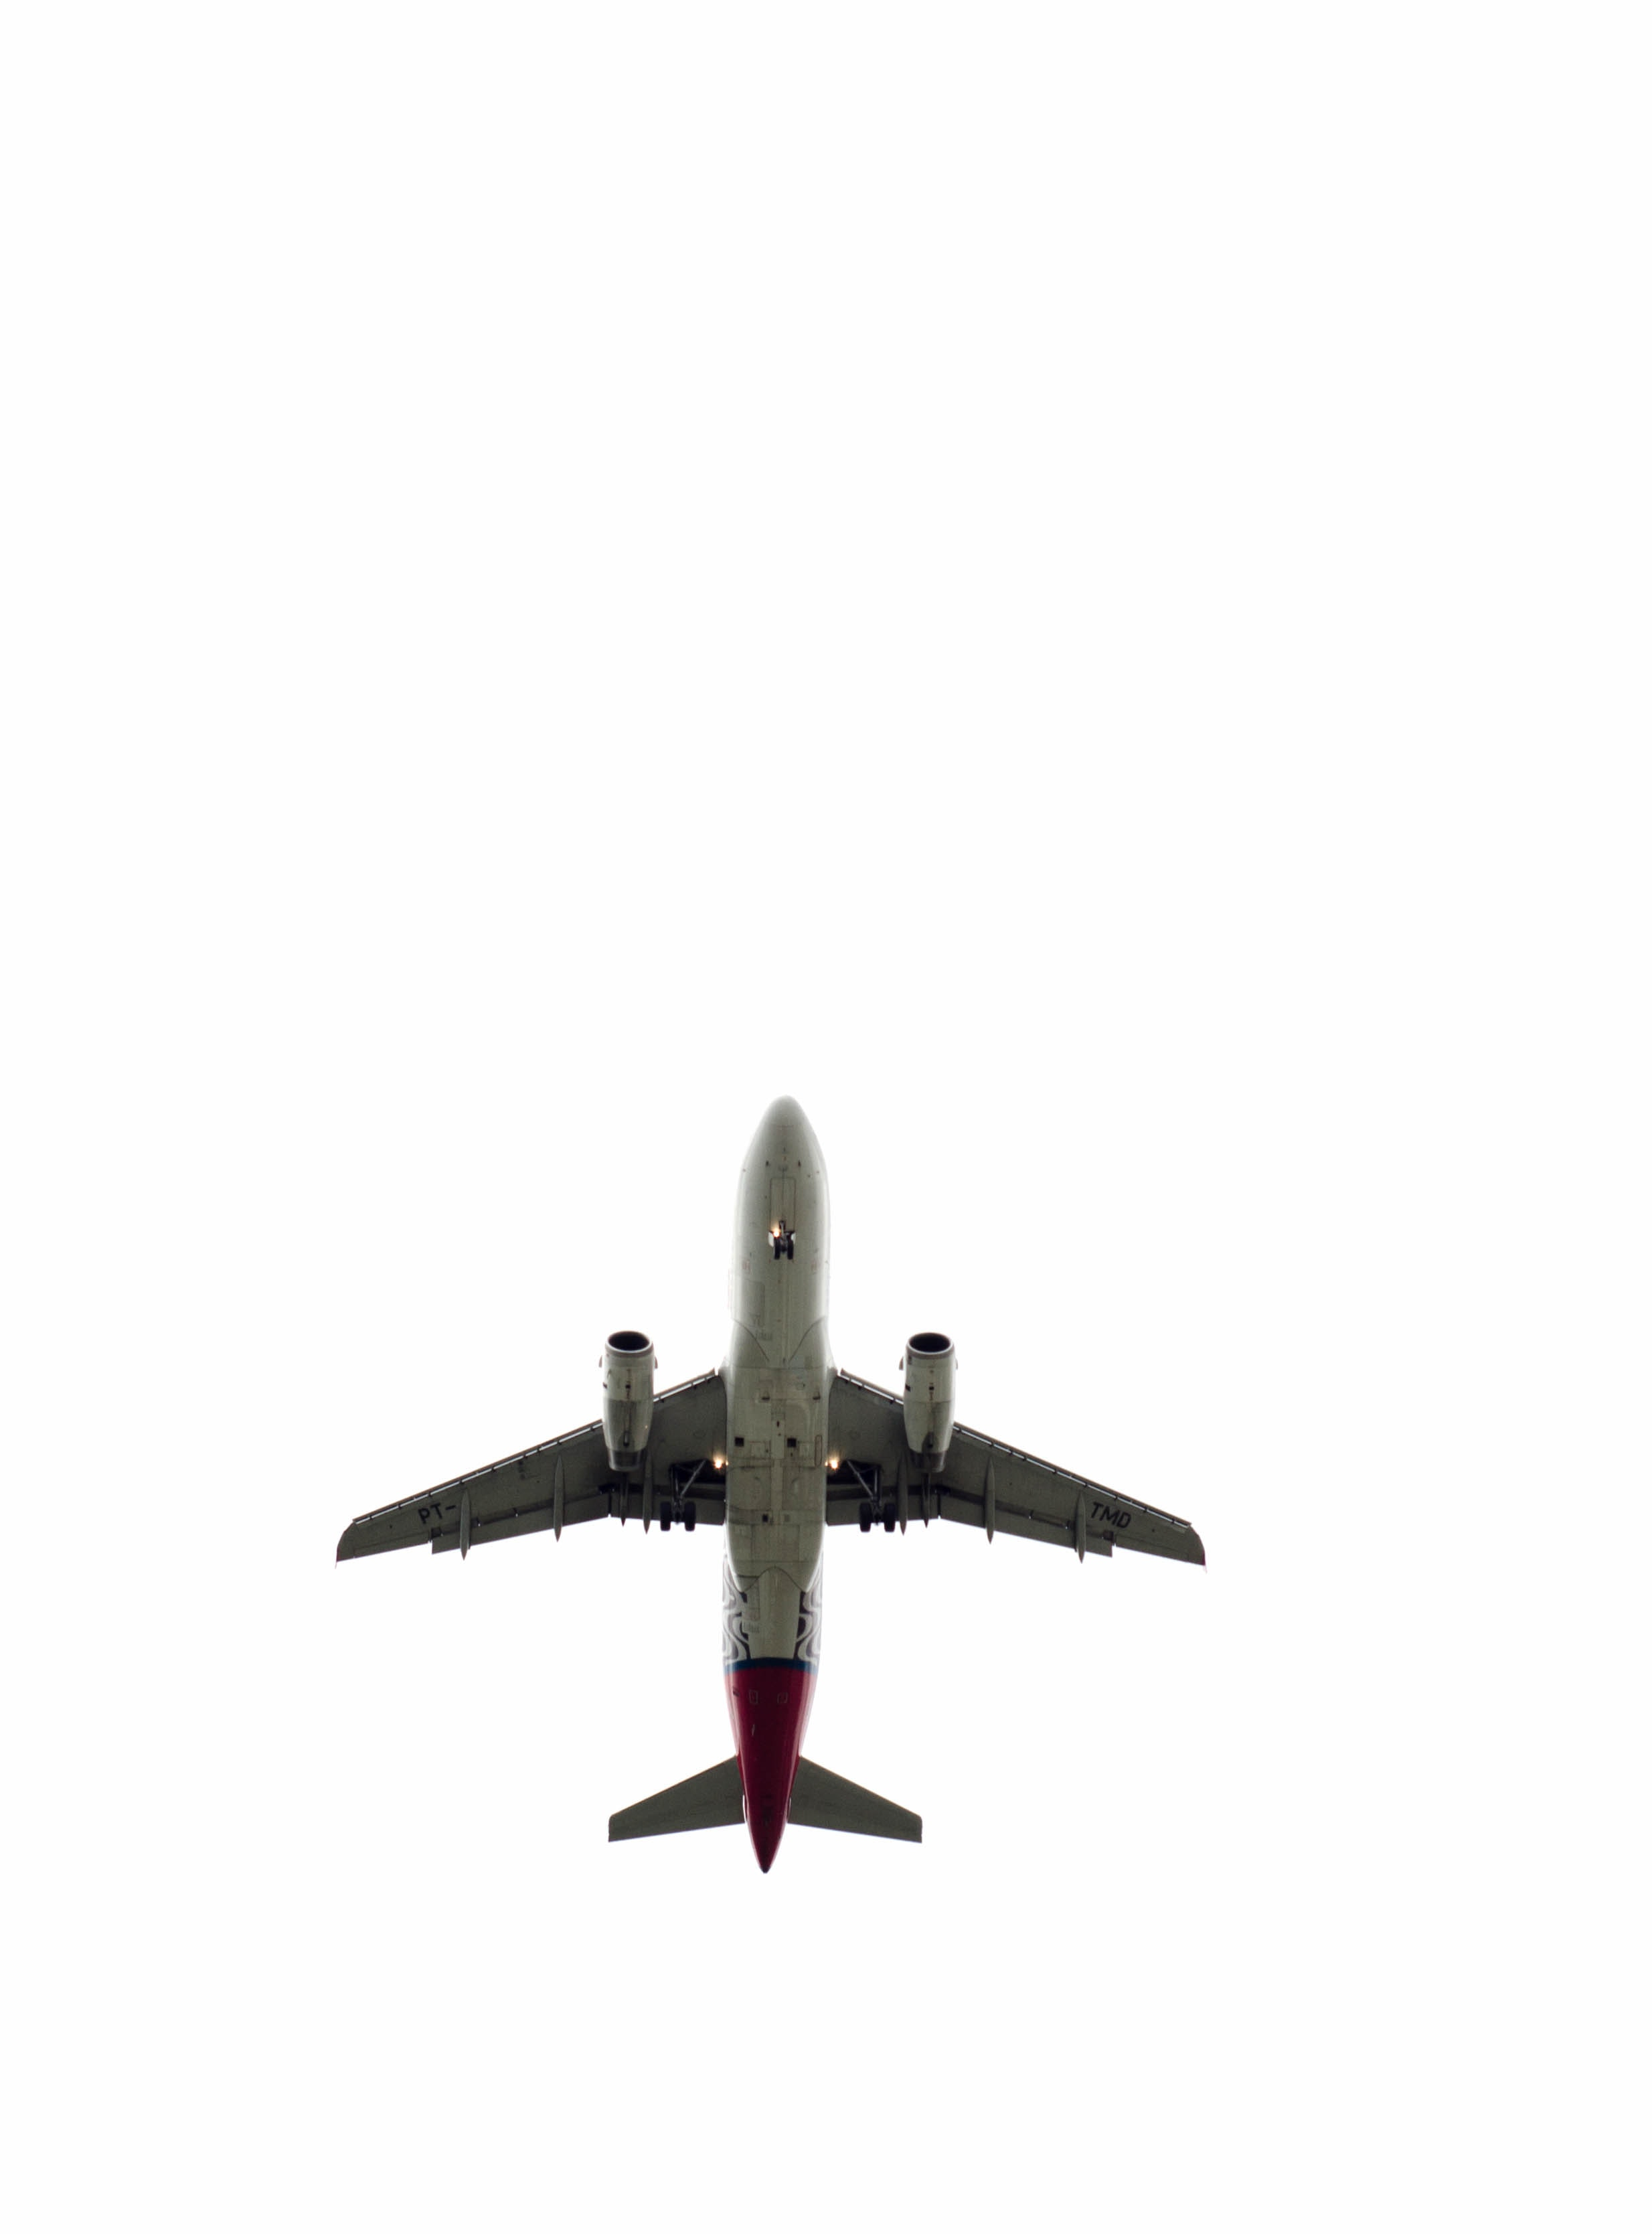 Worm S Eye View Photography Of Passenger Plane 183 Free